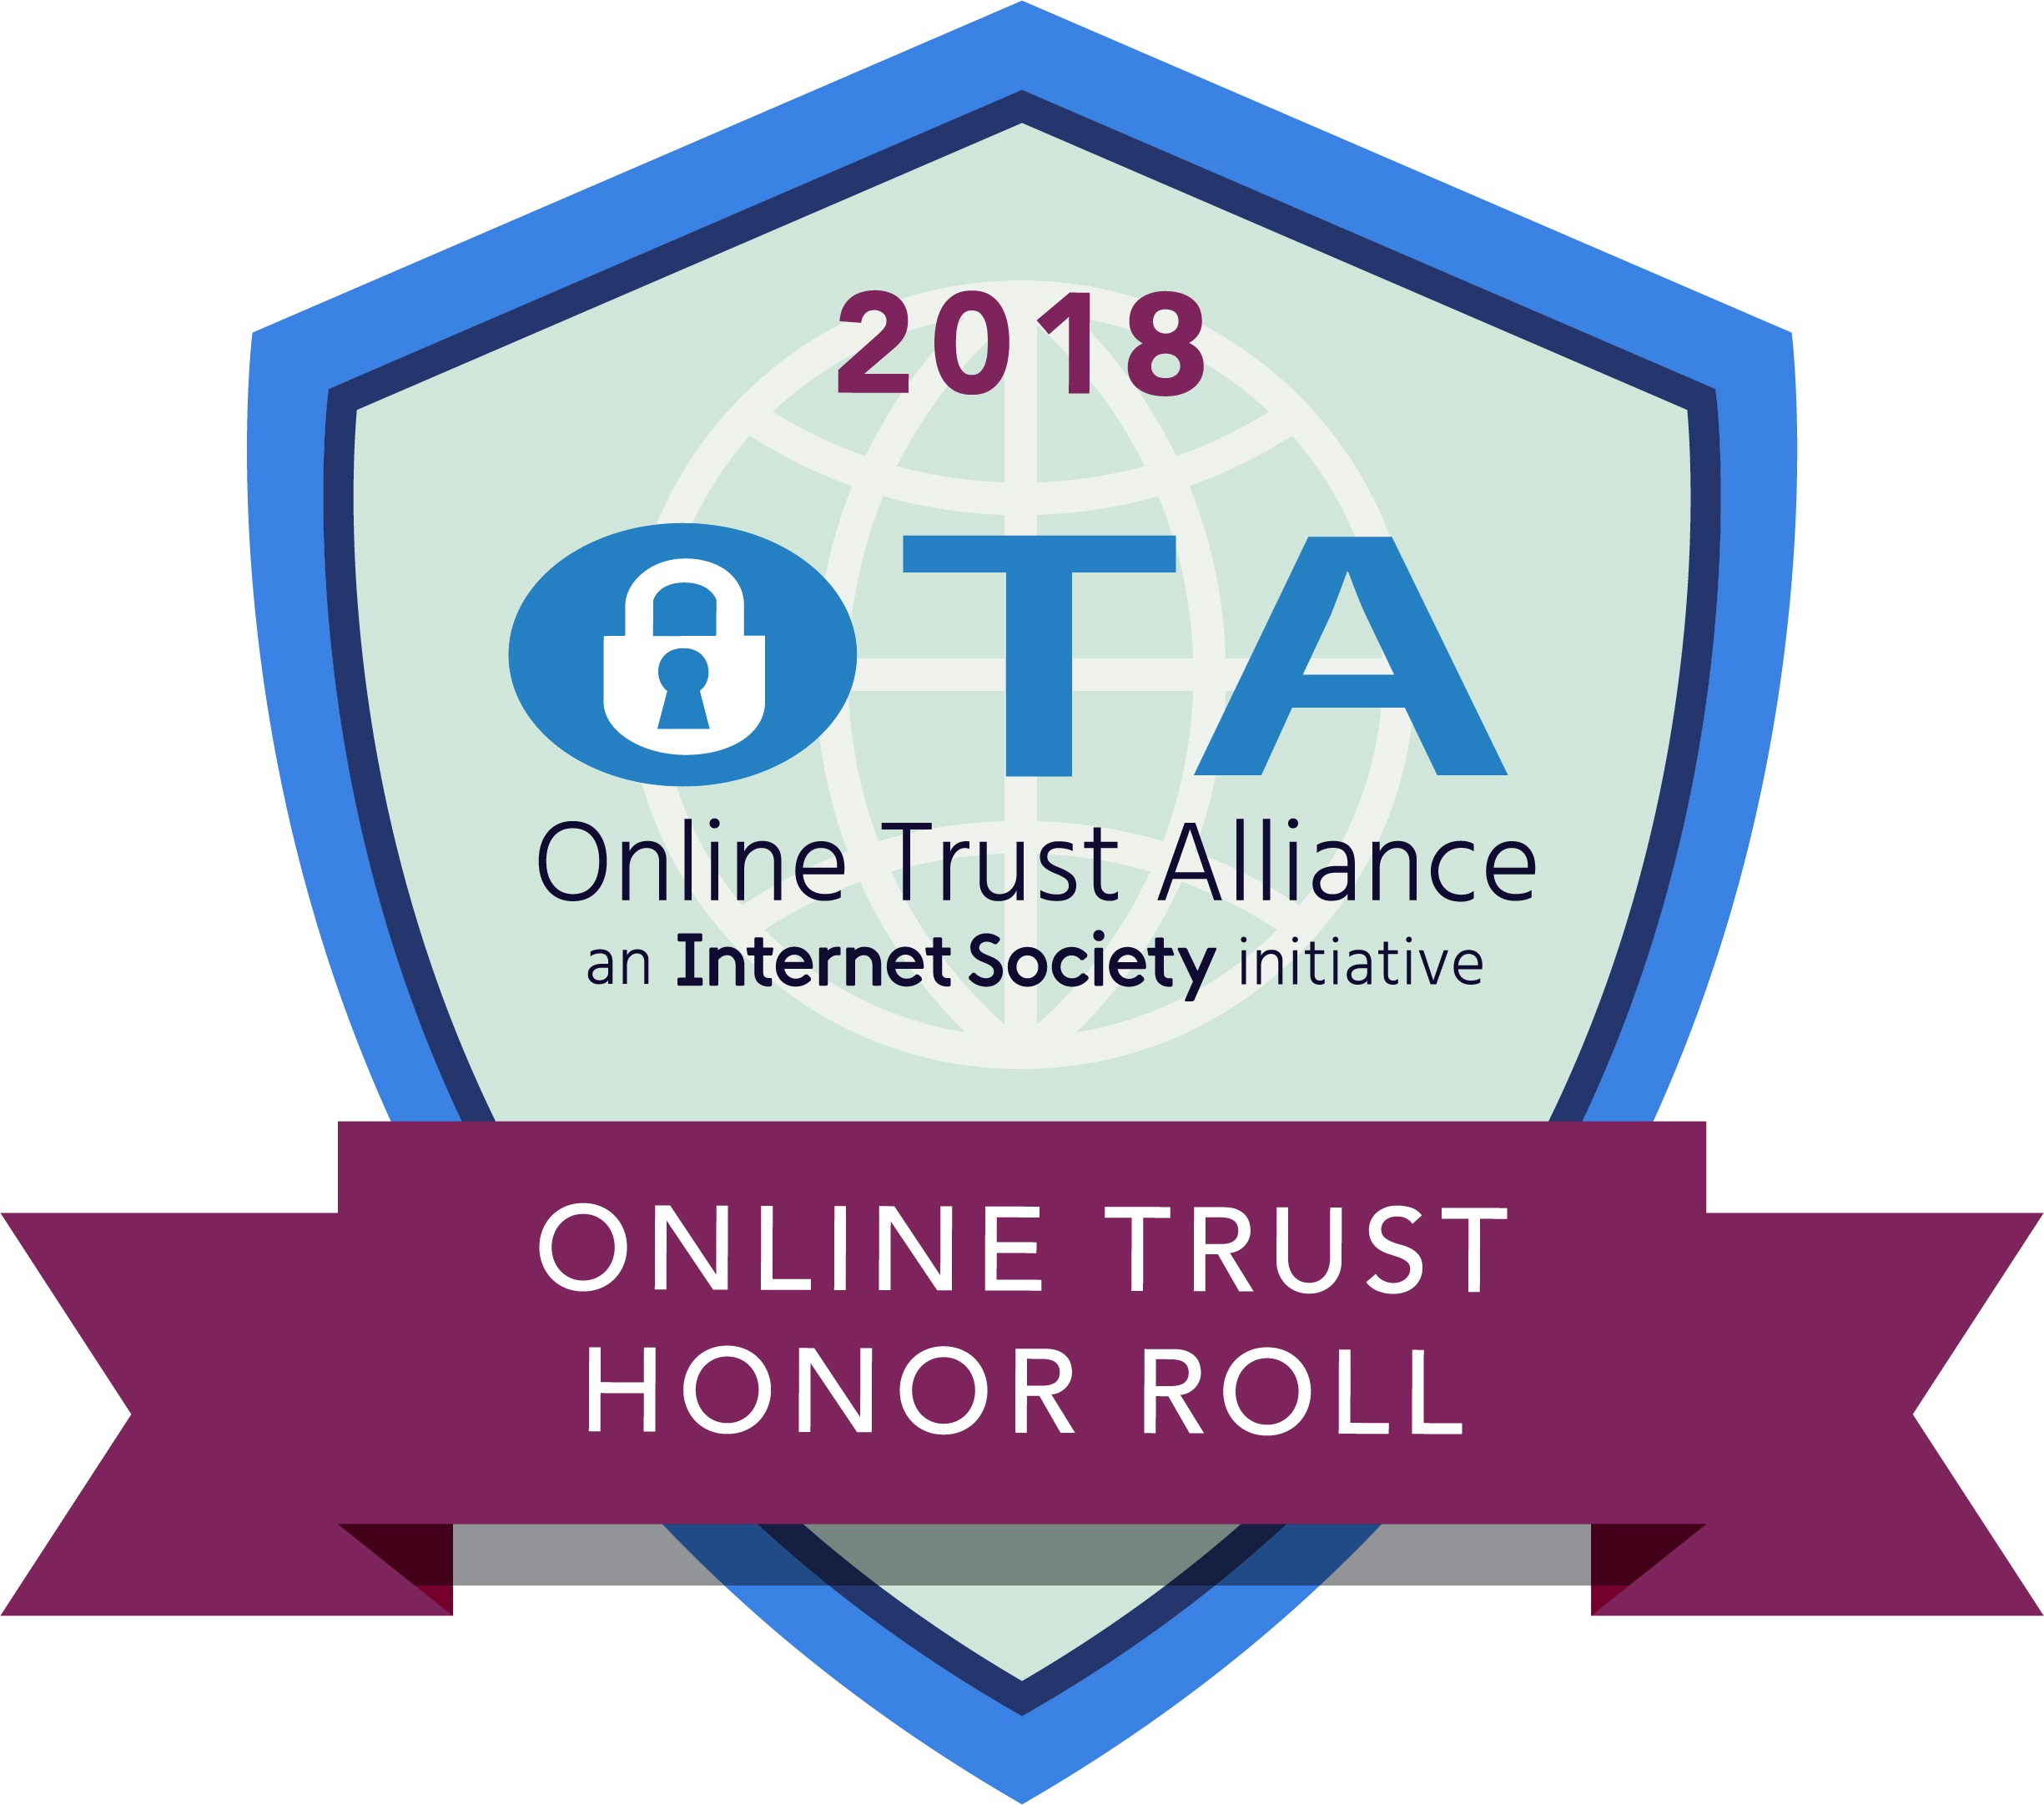 OTA Honor Roll 2018